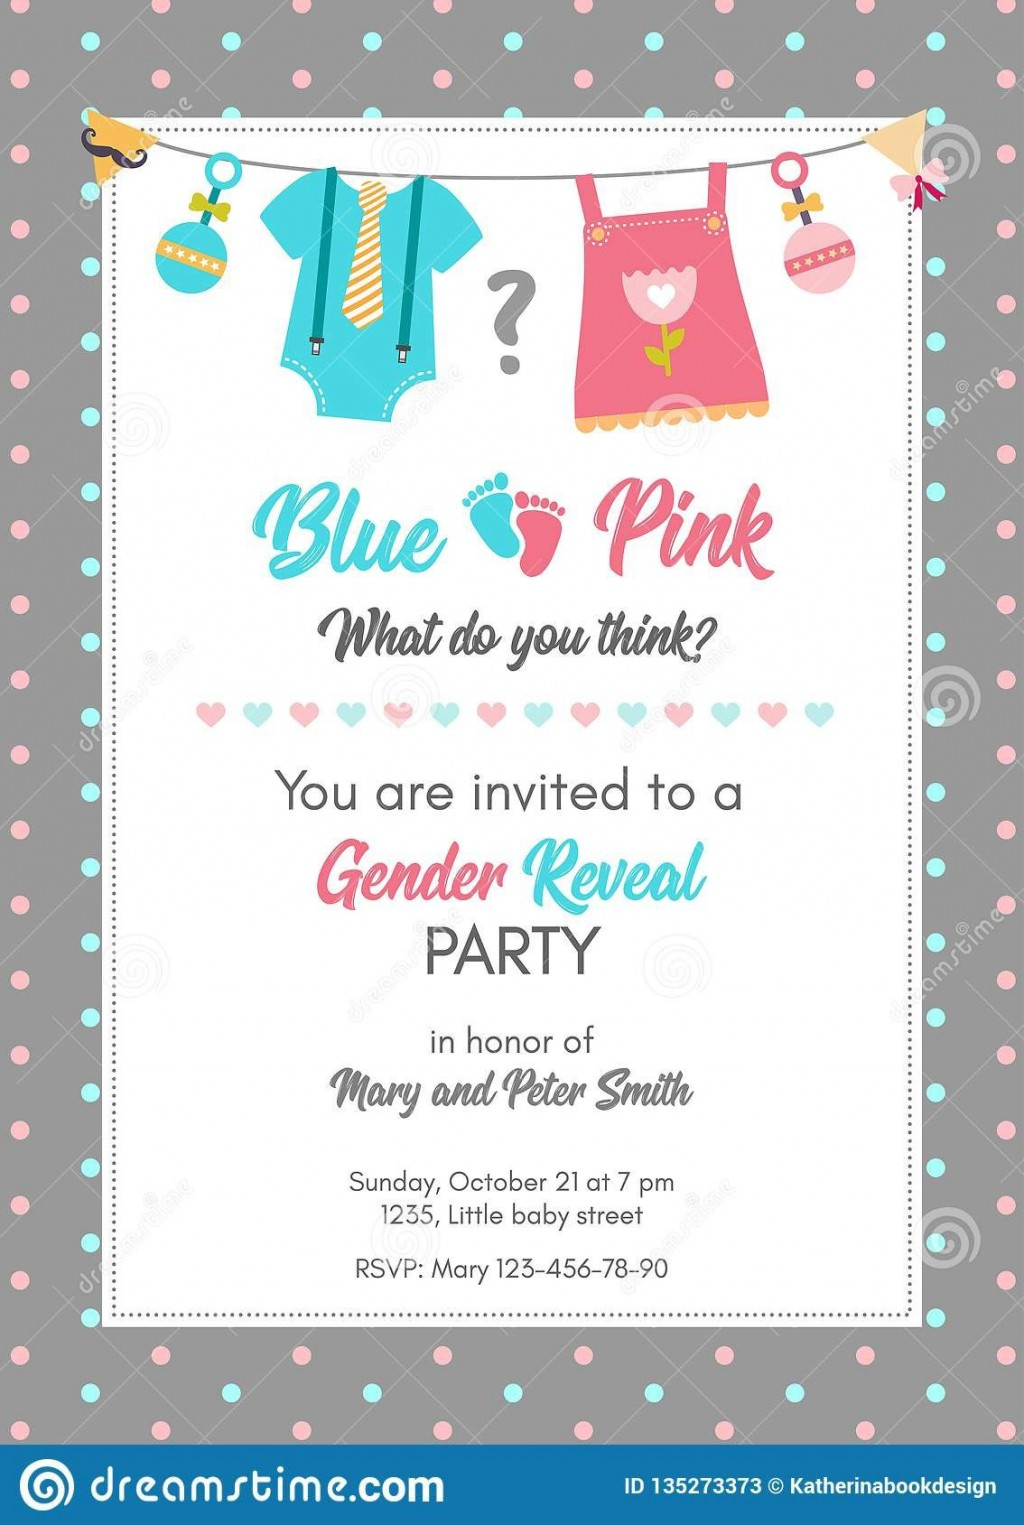 008 Dreaded Gender Reveal Invitation Template Image  Templates Party Free Printable MakerLarge